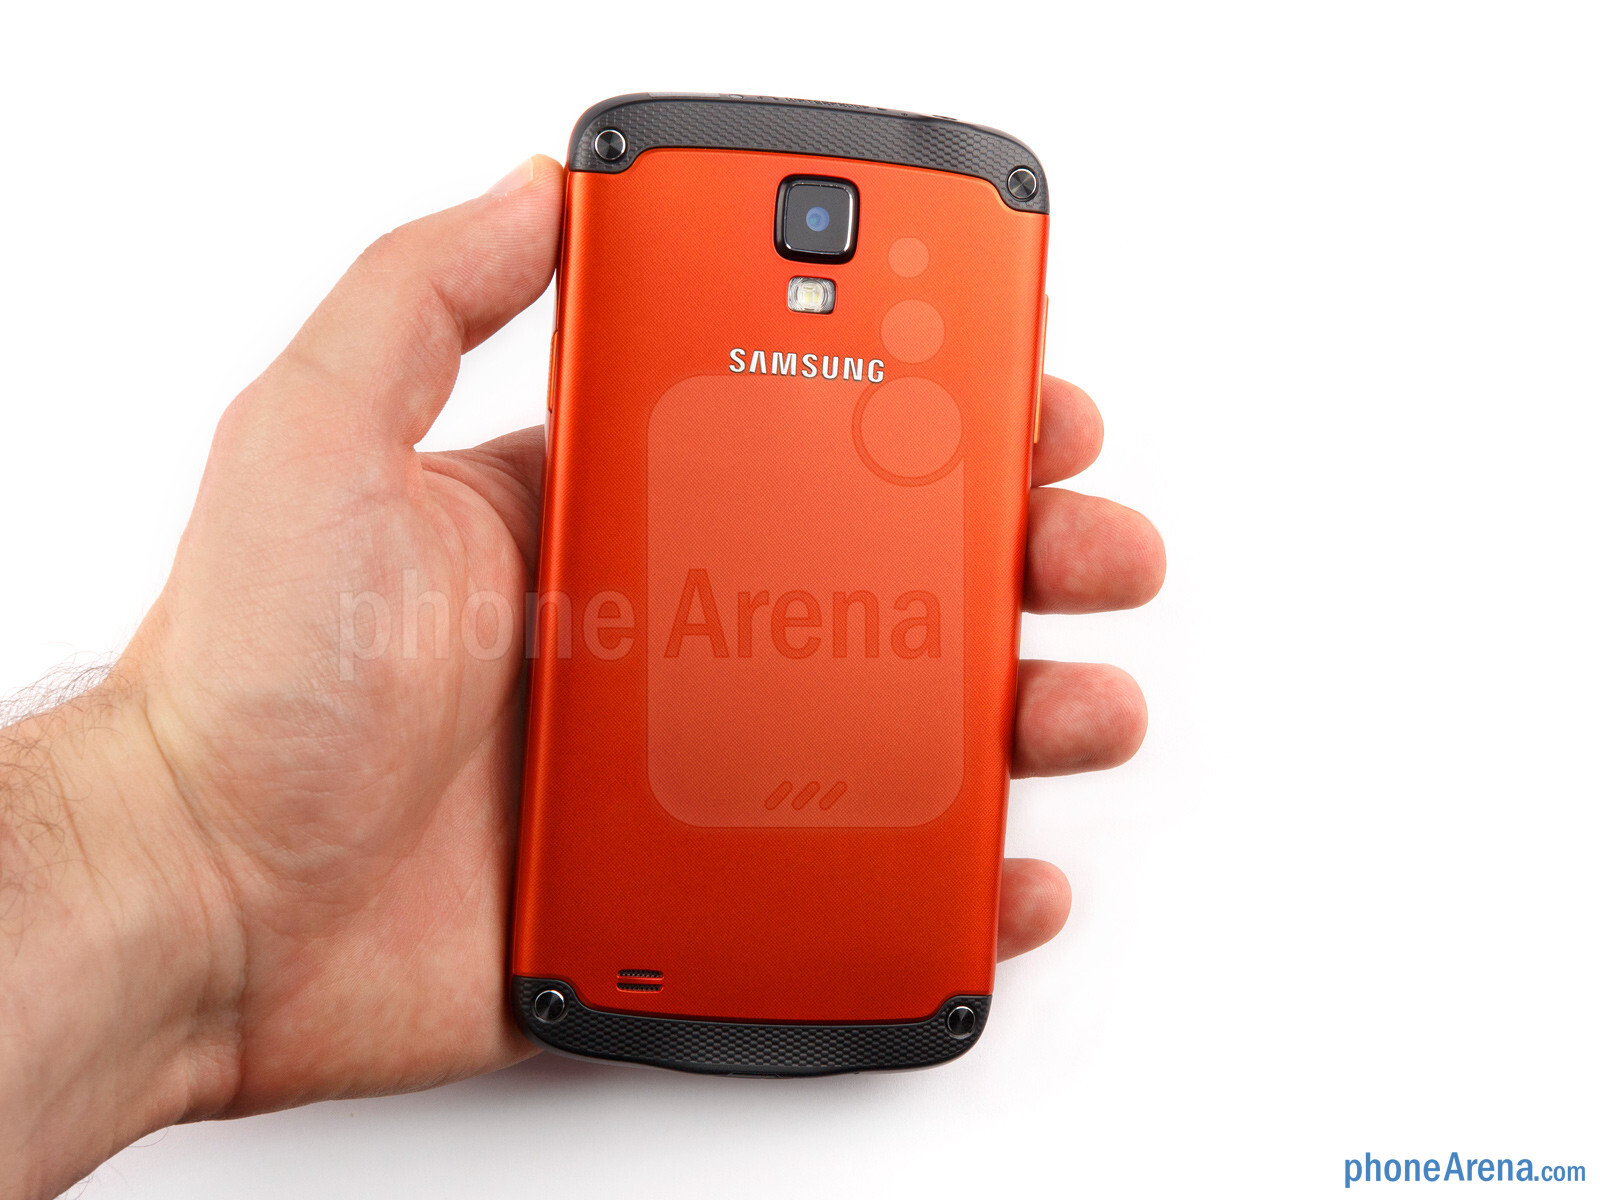 Samsung Galaxy S4 Active may be a challenge - Samsung Galaxy S4 Active